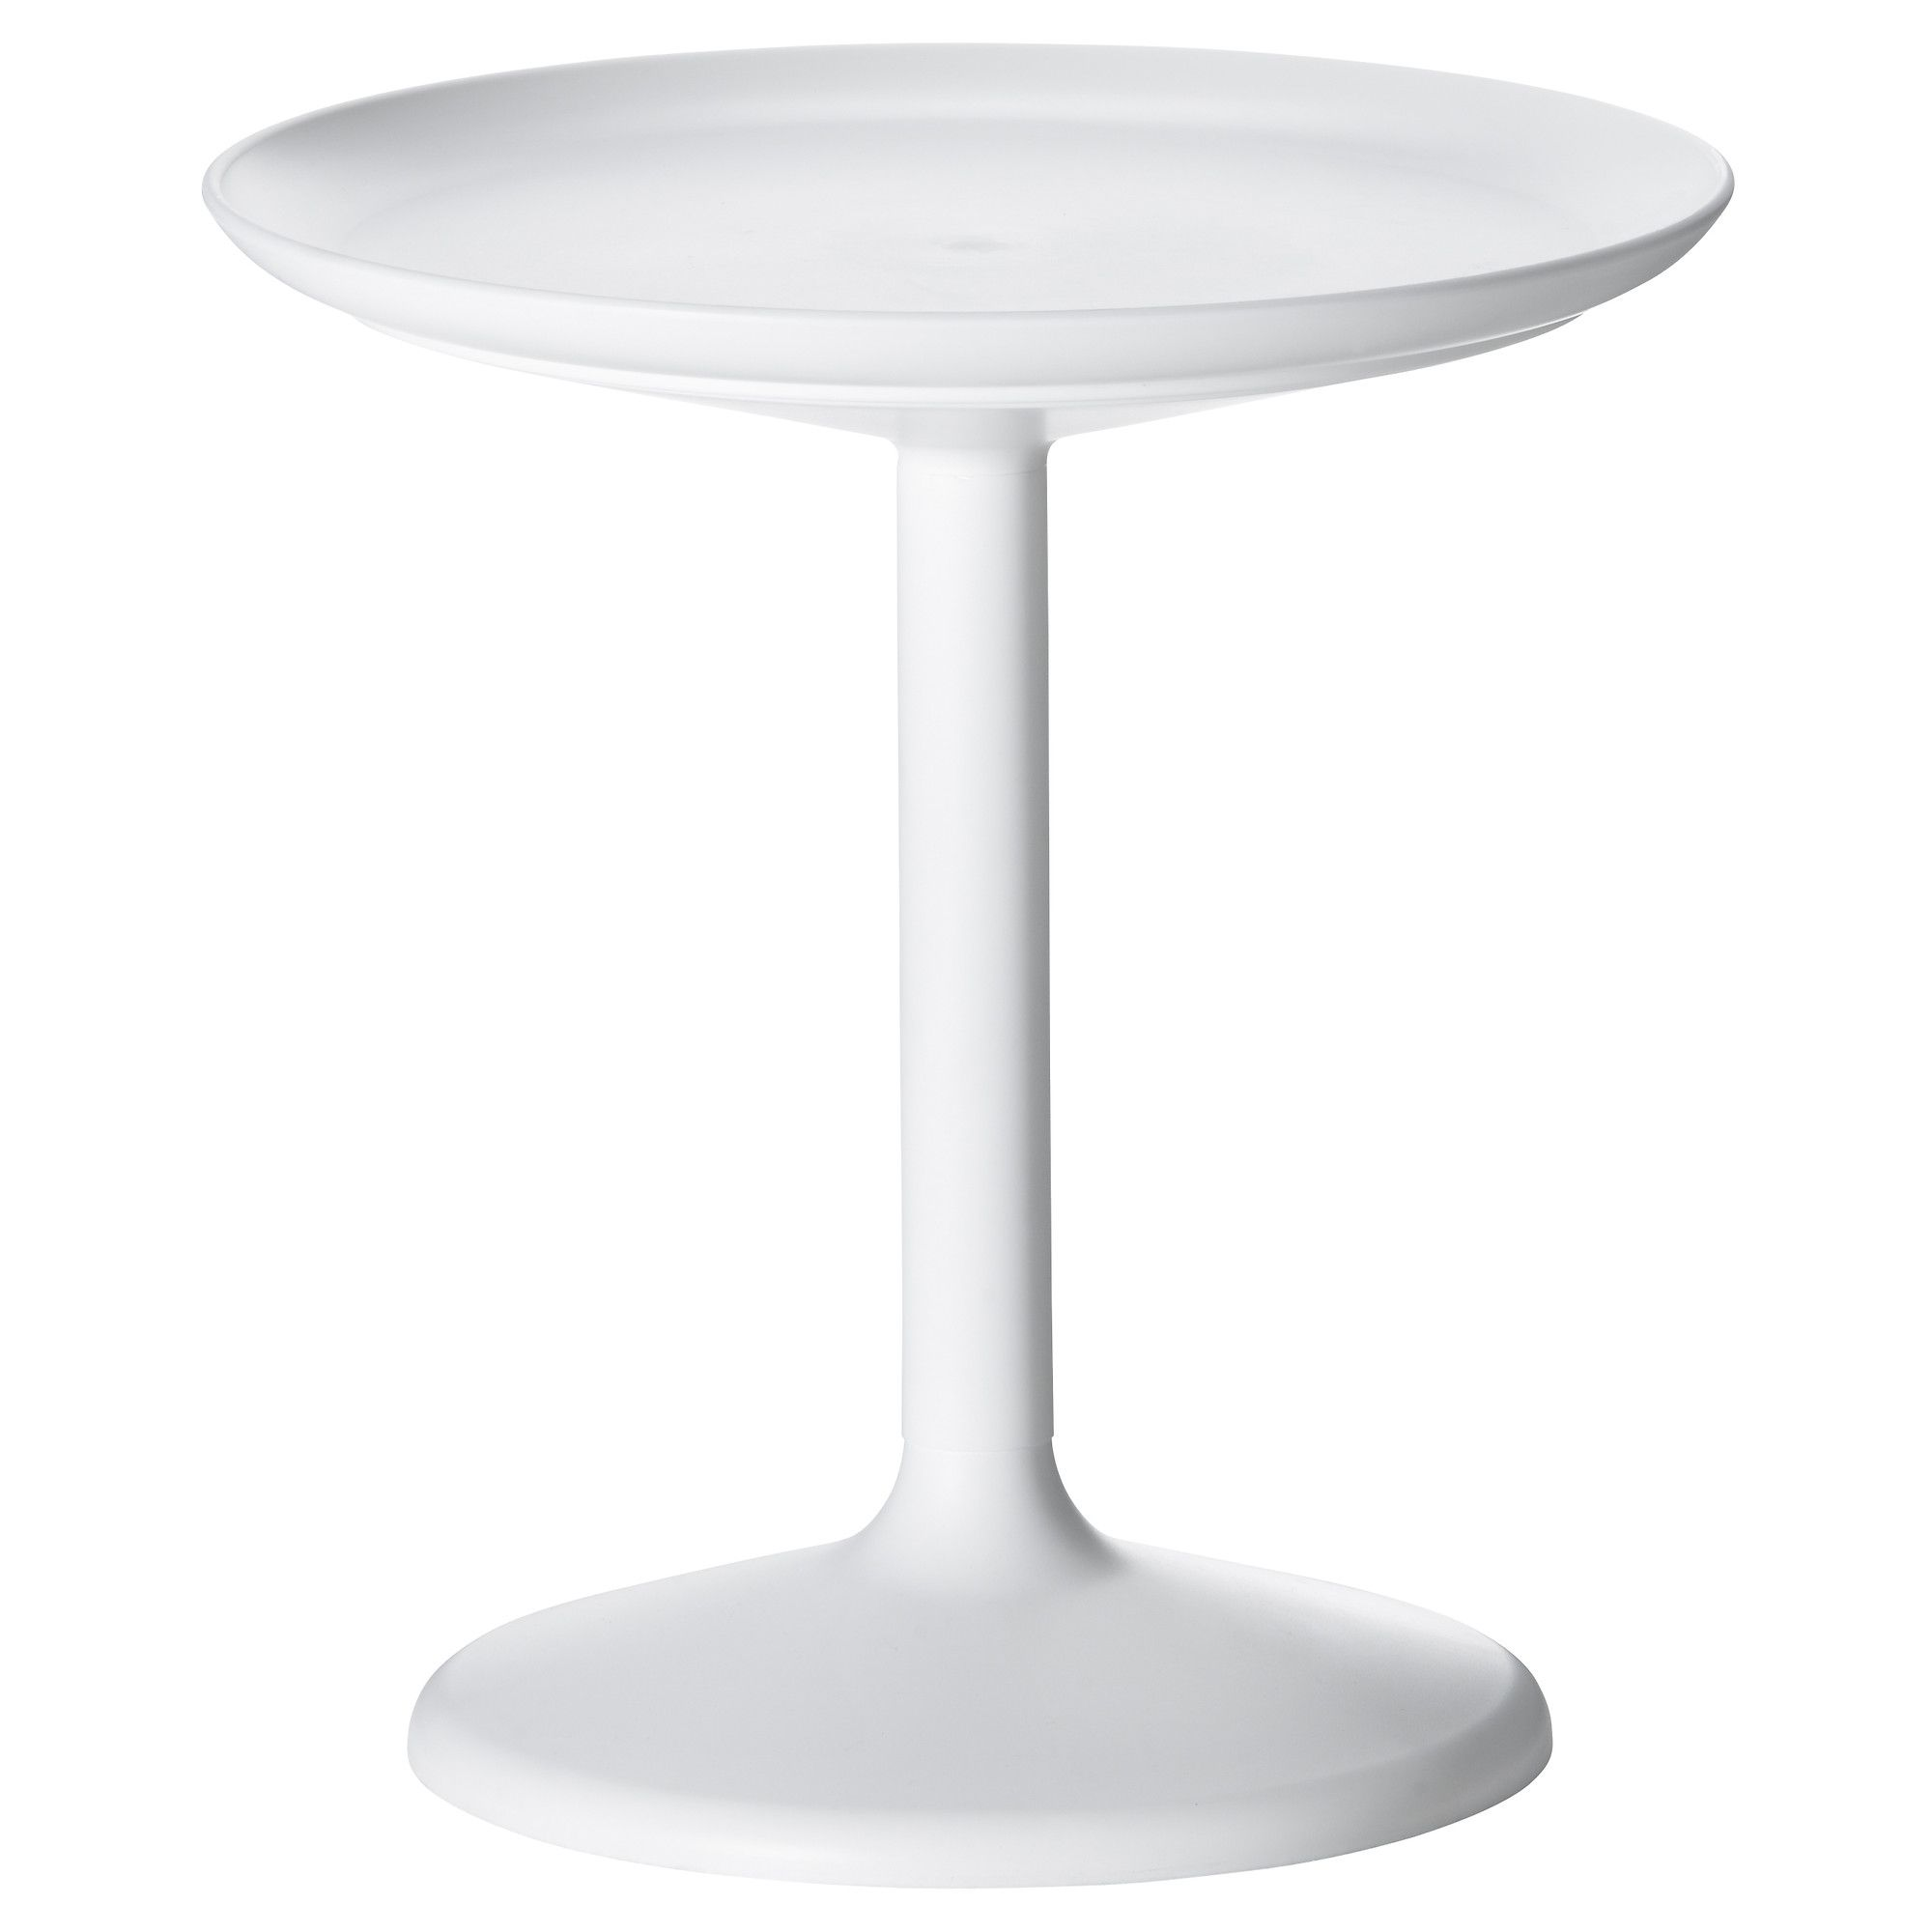 white chairs ikea ikea ps. ikea ps sandskr tray table outdoor you can also use the removable top as a serving traythe materials in this furniture require white chairs ikea ps